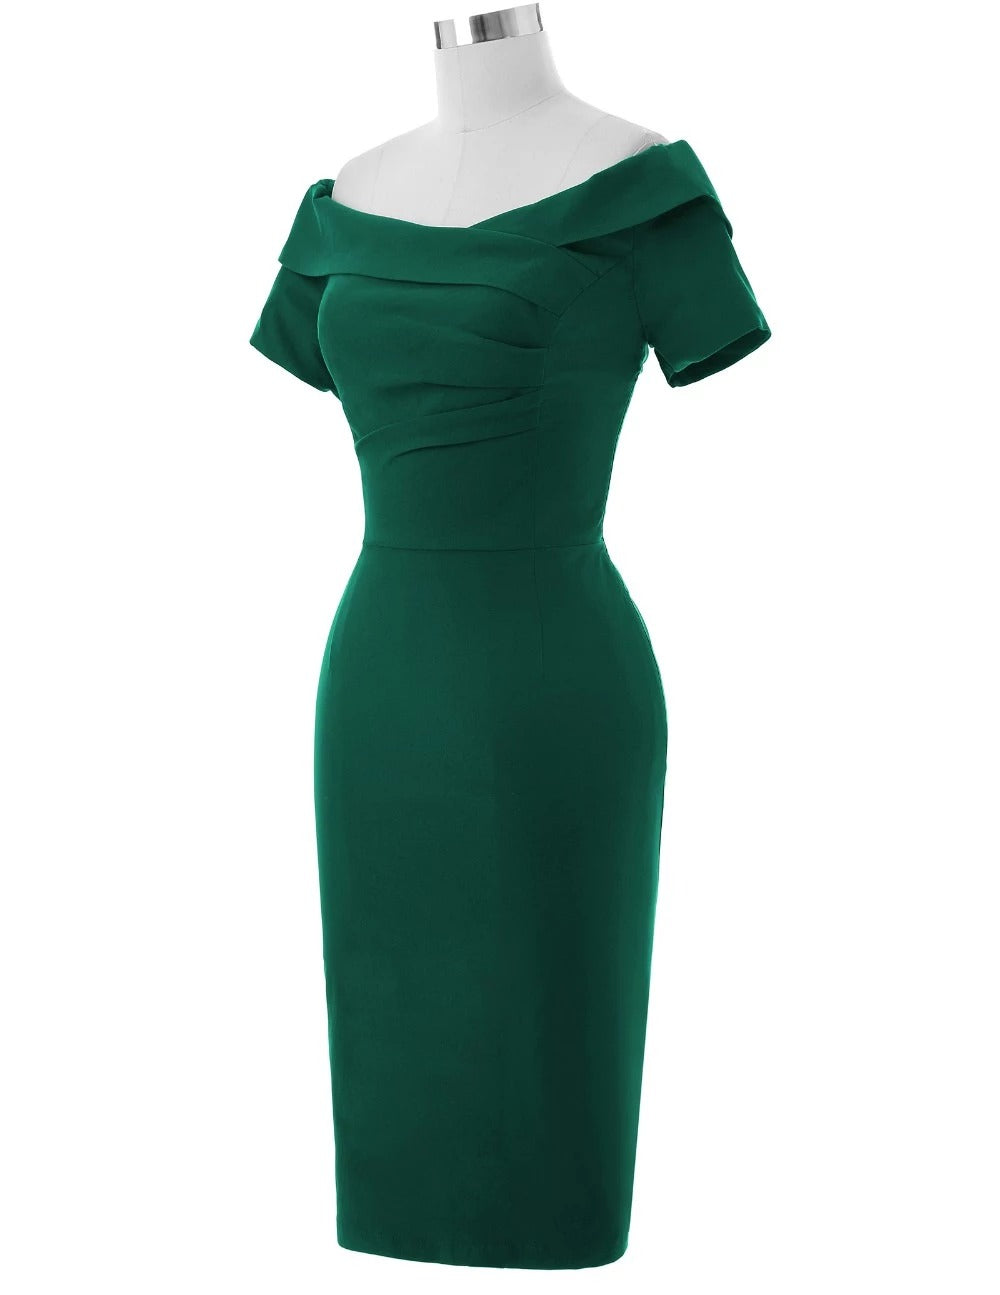 The Harlow Wiggle Dress in green by Ponyboy Vintage Clothing!